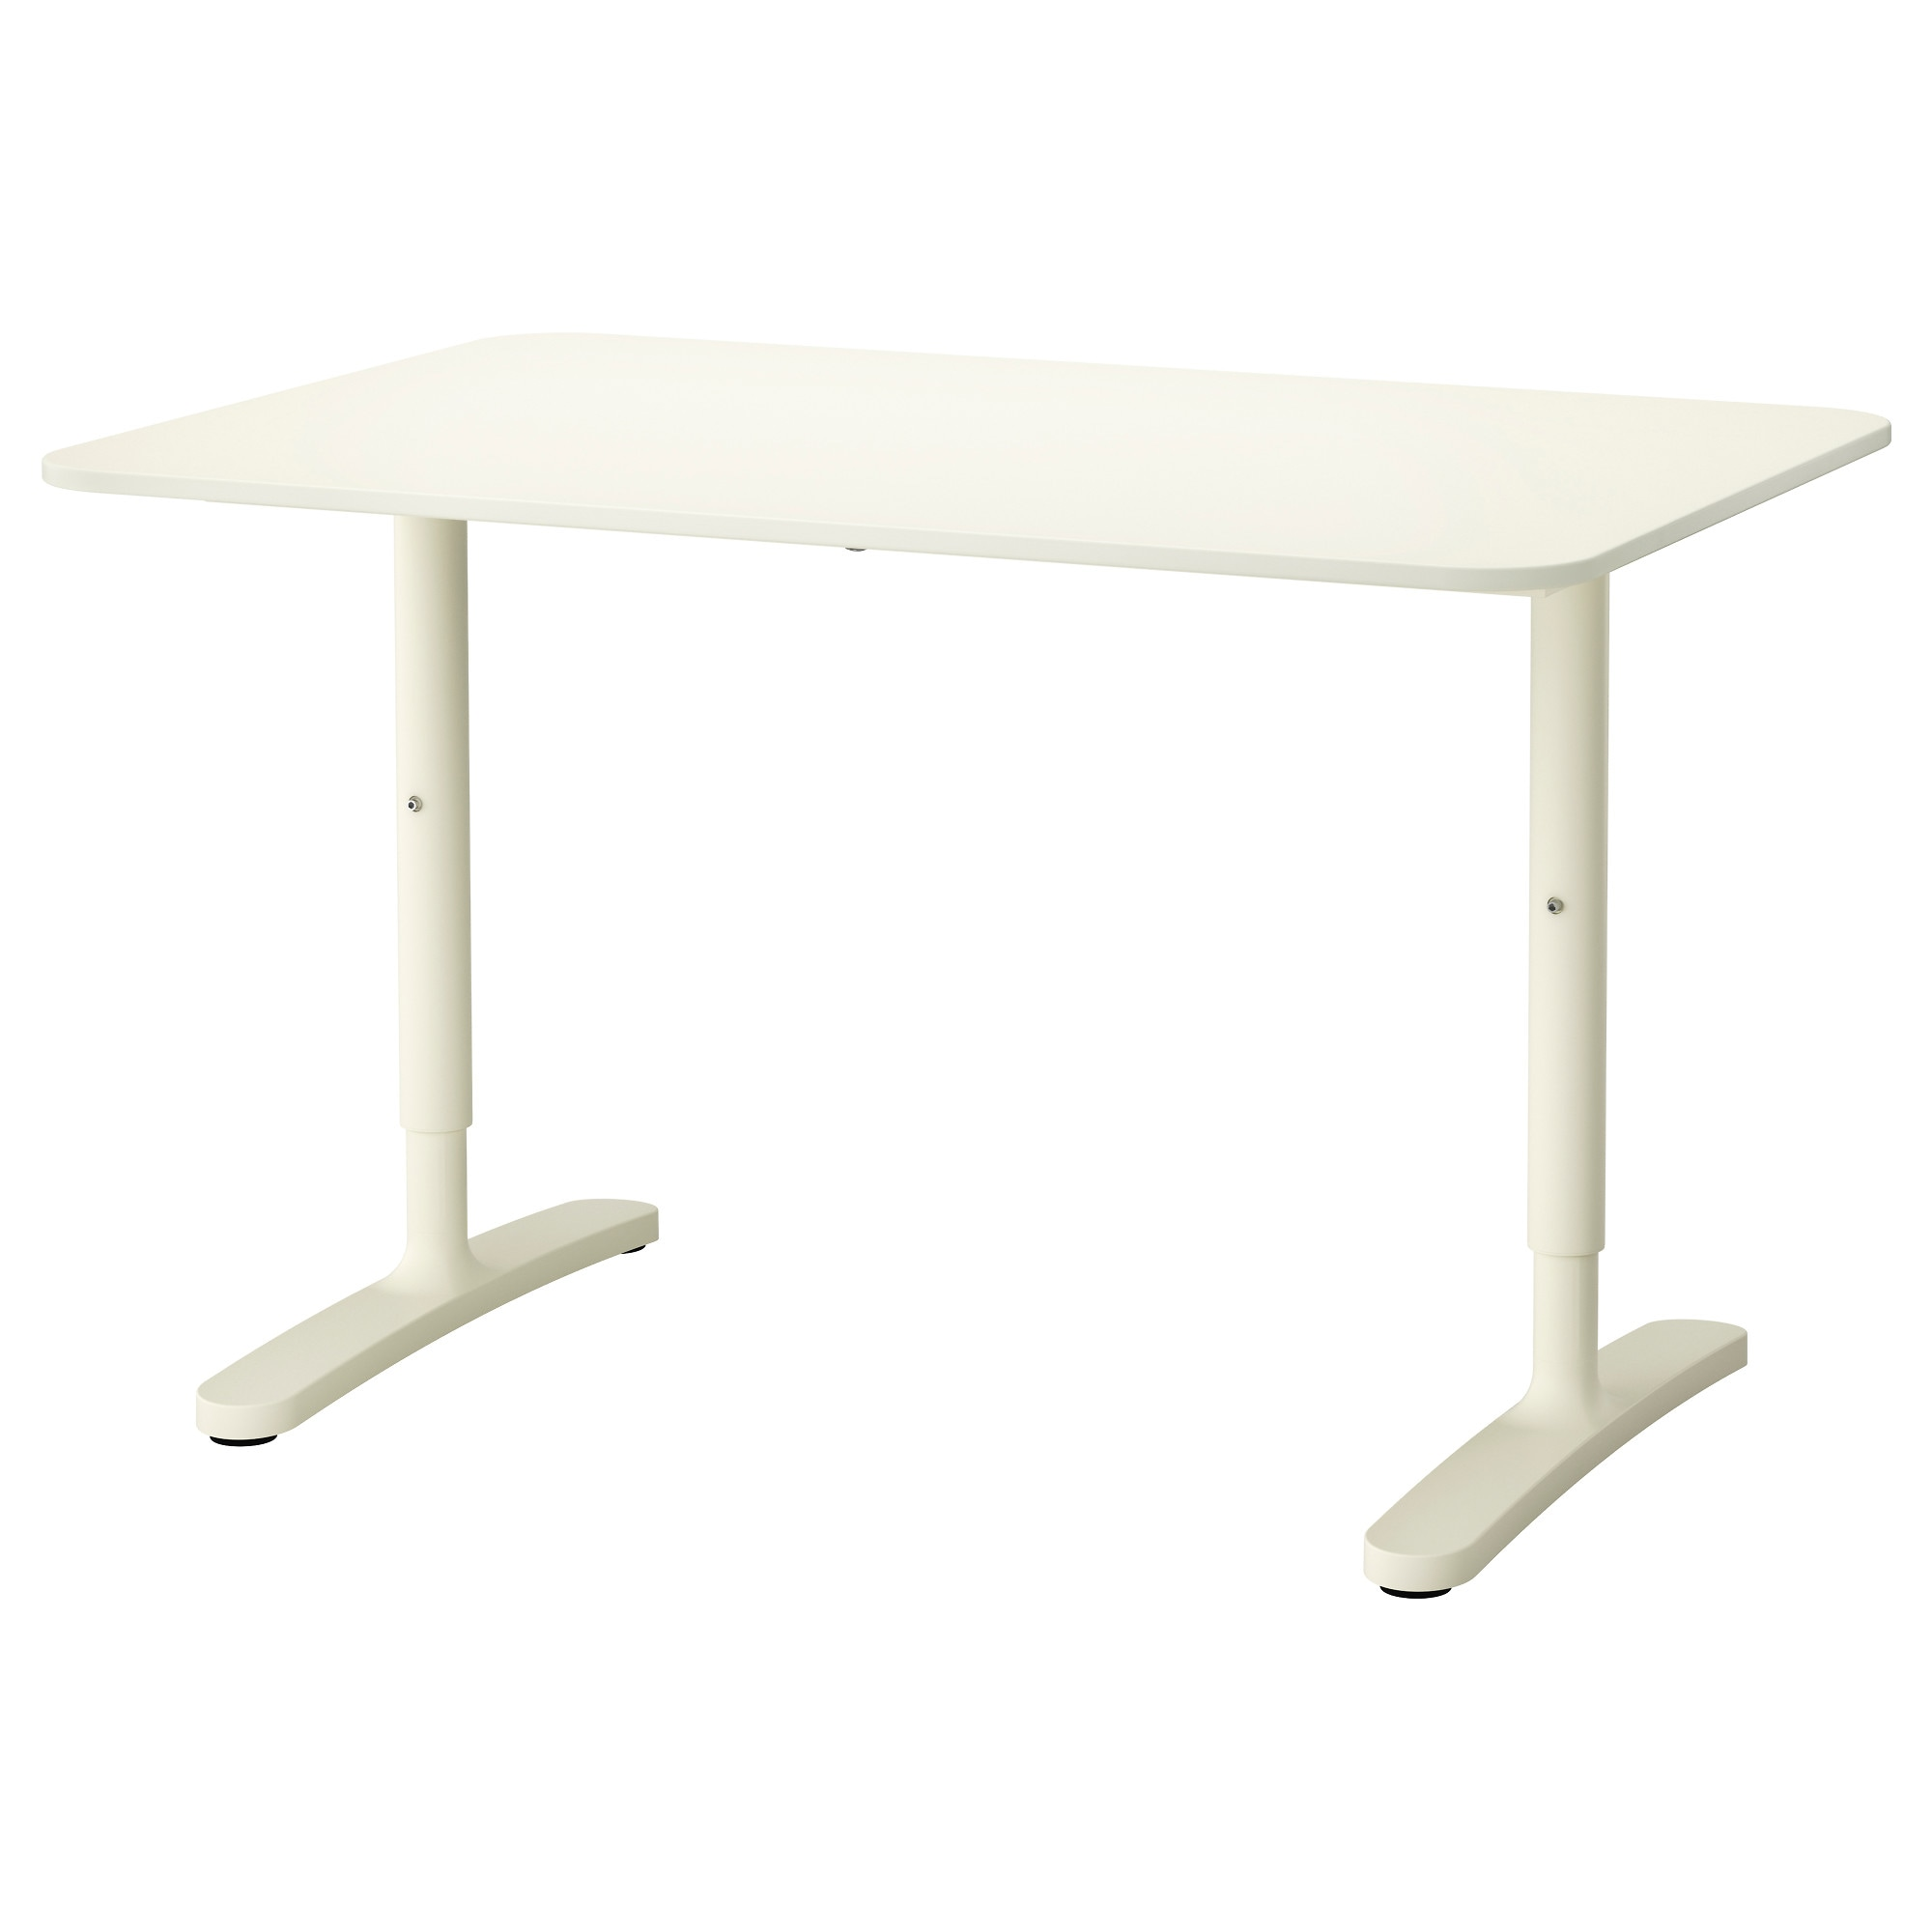 ideas collection adjustable at up incredible rise a desks ikea standing all or including stand desk